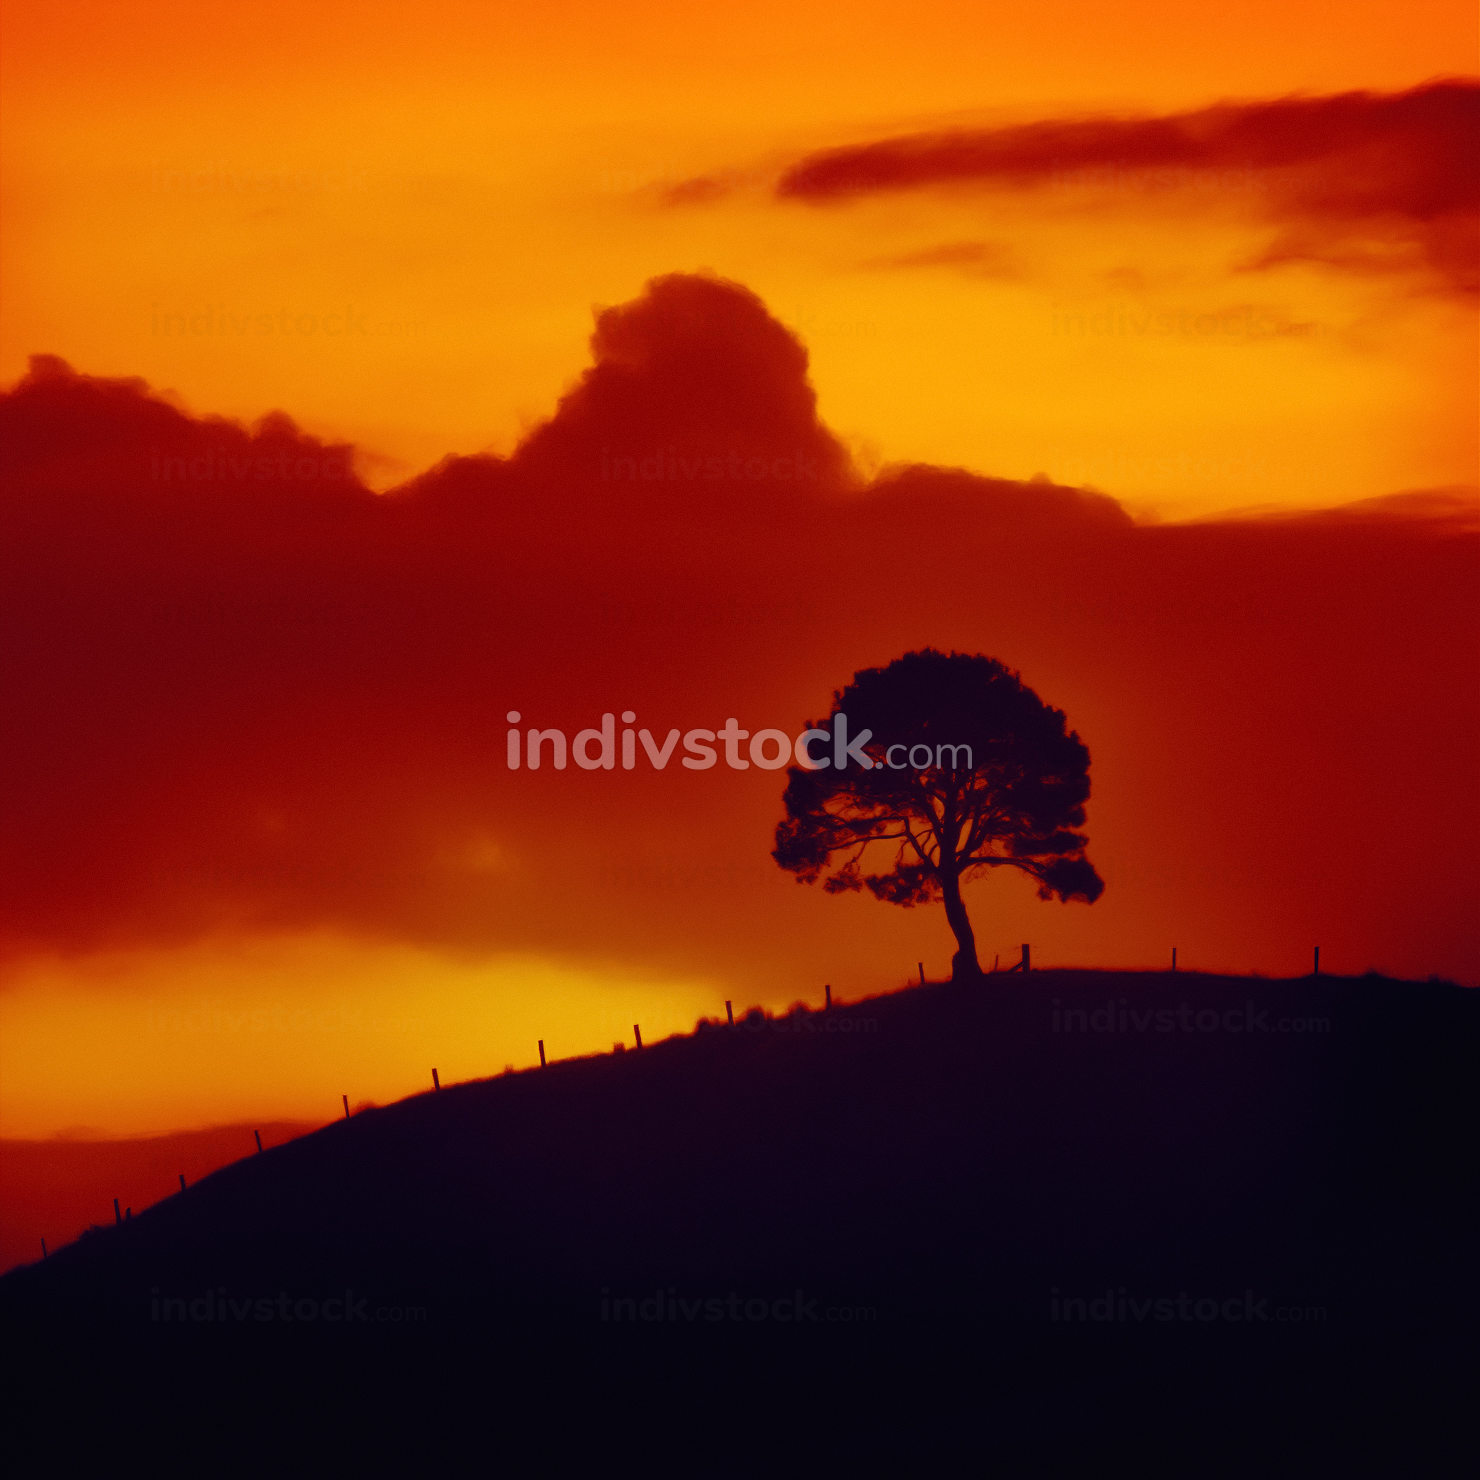 blurred sunset sky with tree